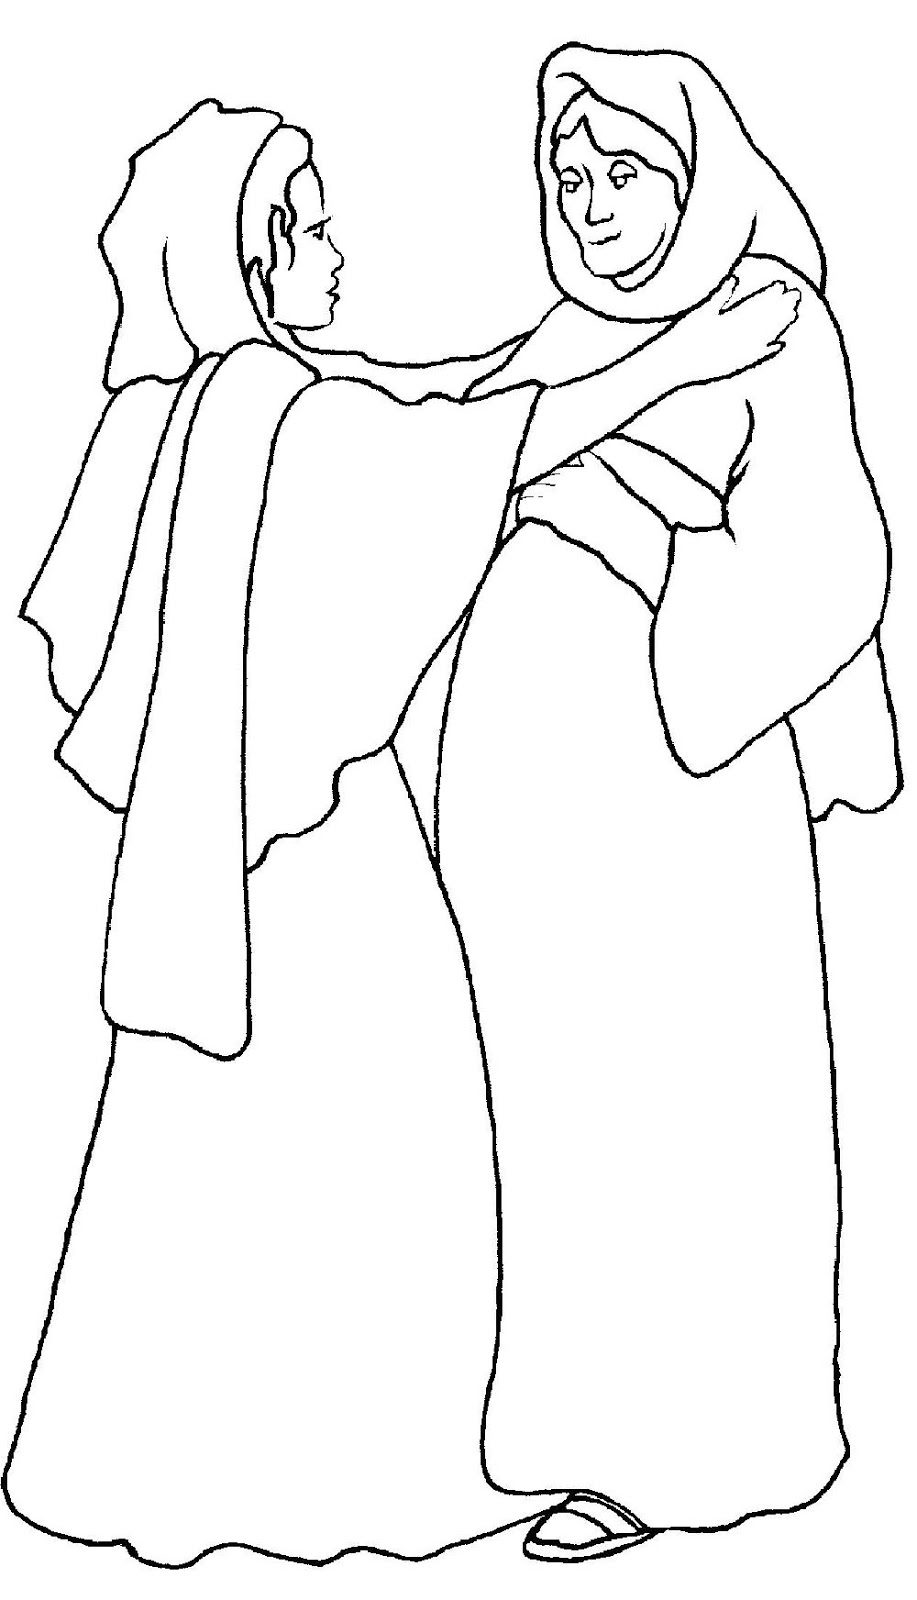 hail mary coloring pages - photo #23